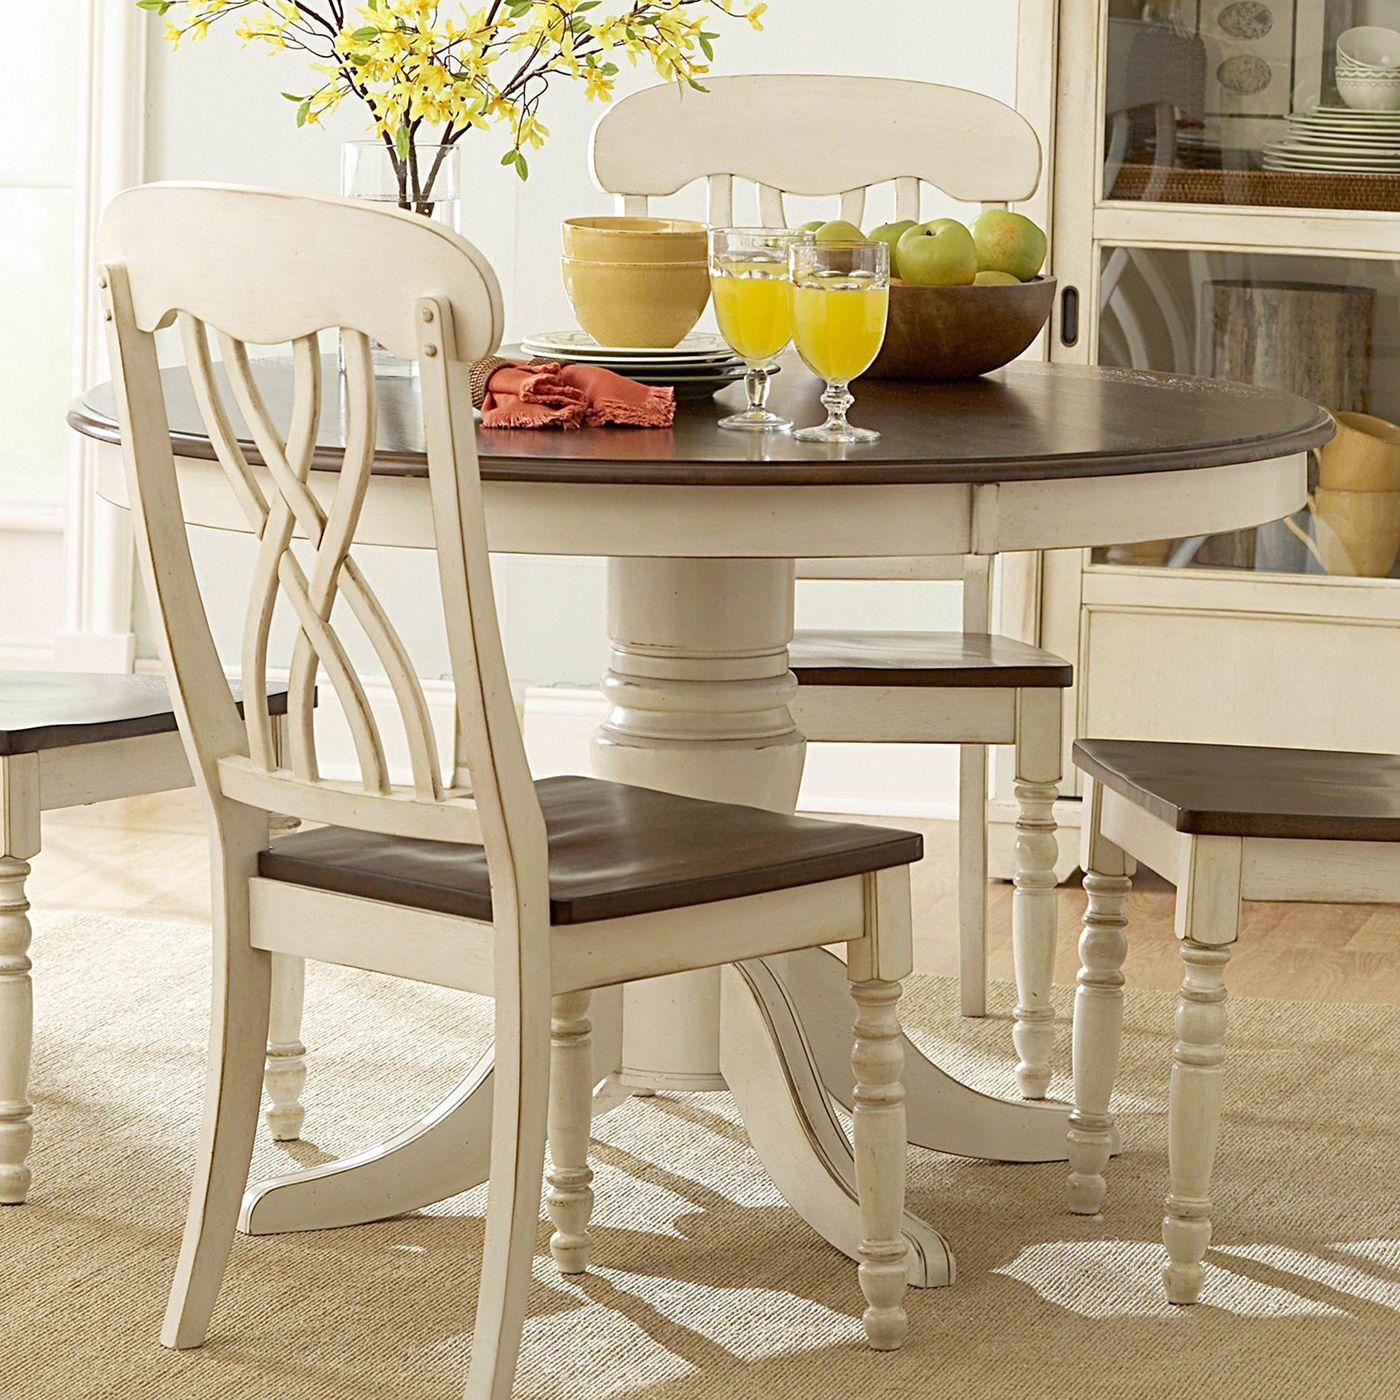 5 Piece Countryside Round Table Set   Antique White   782 From Target Amazing Design